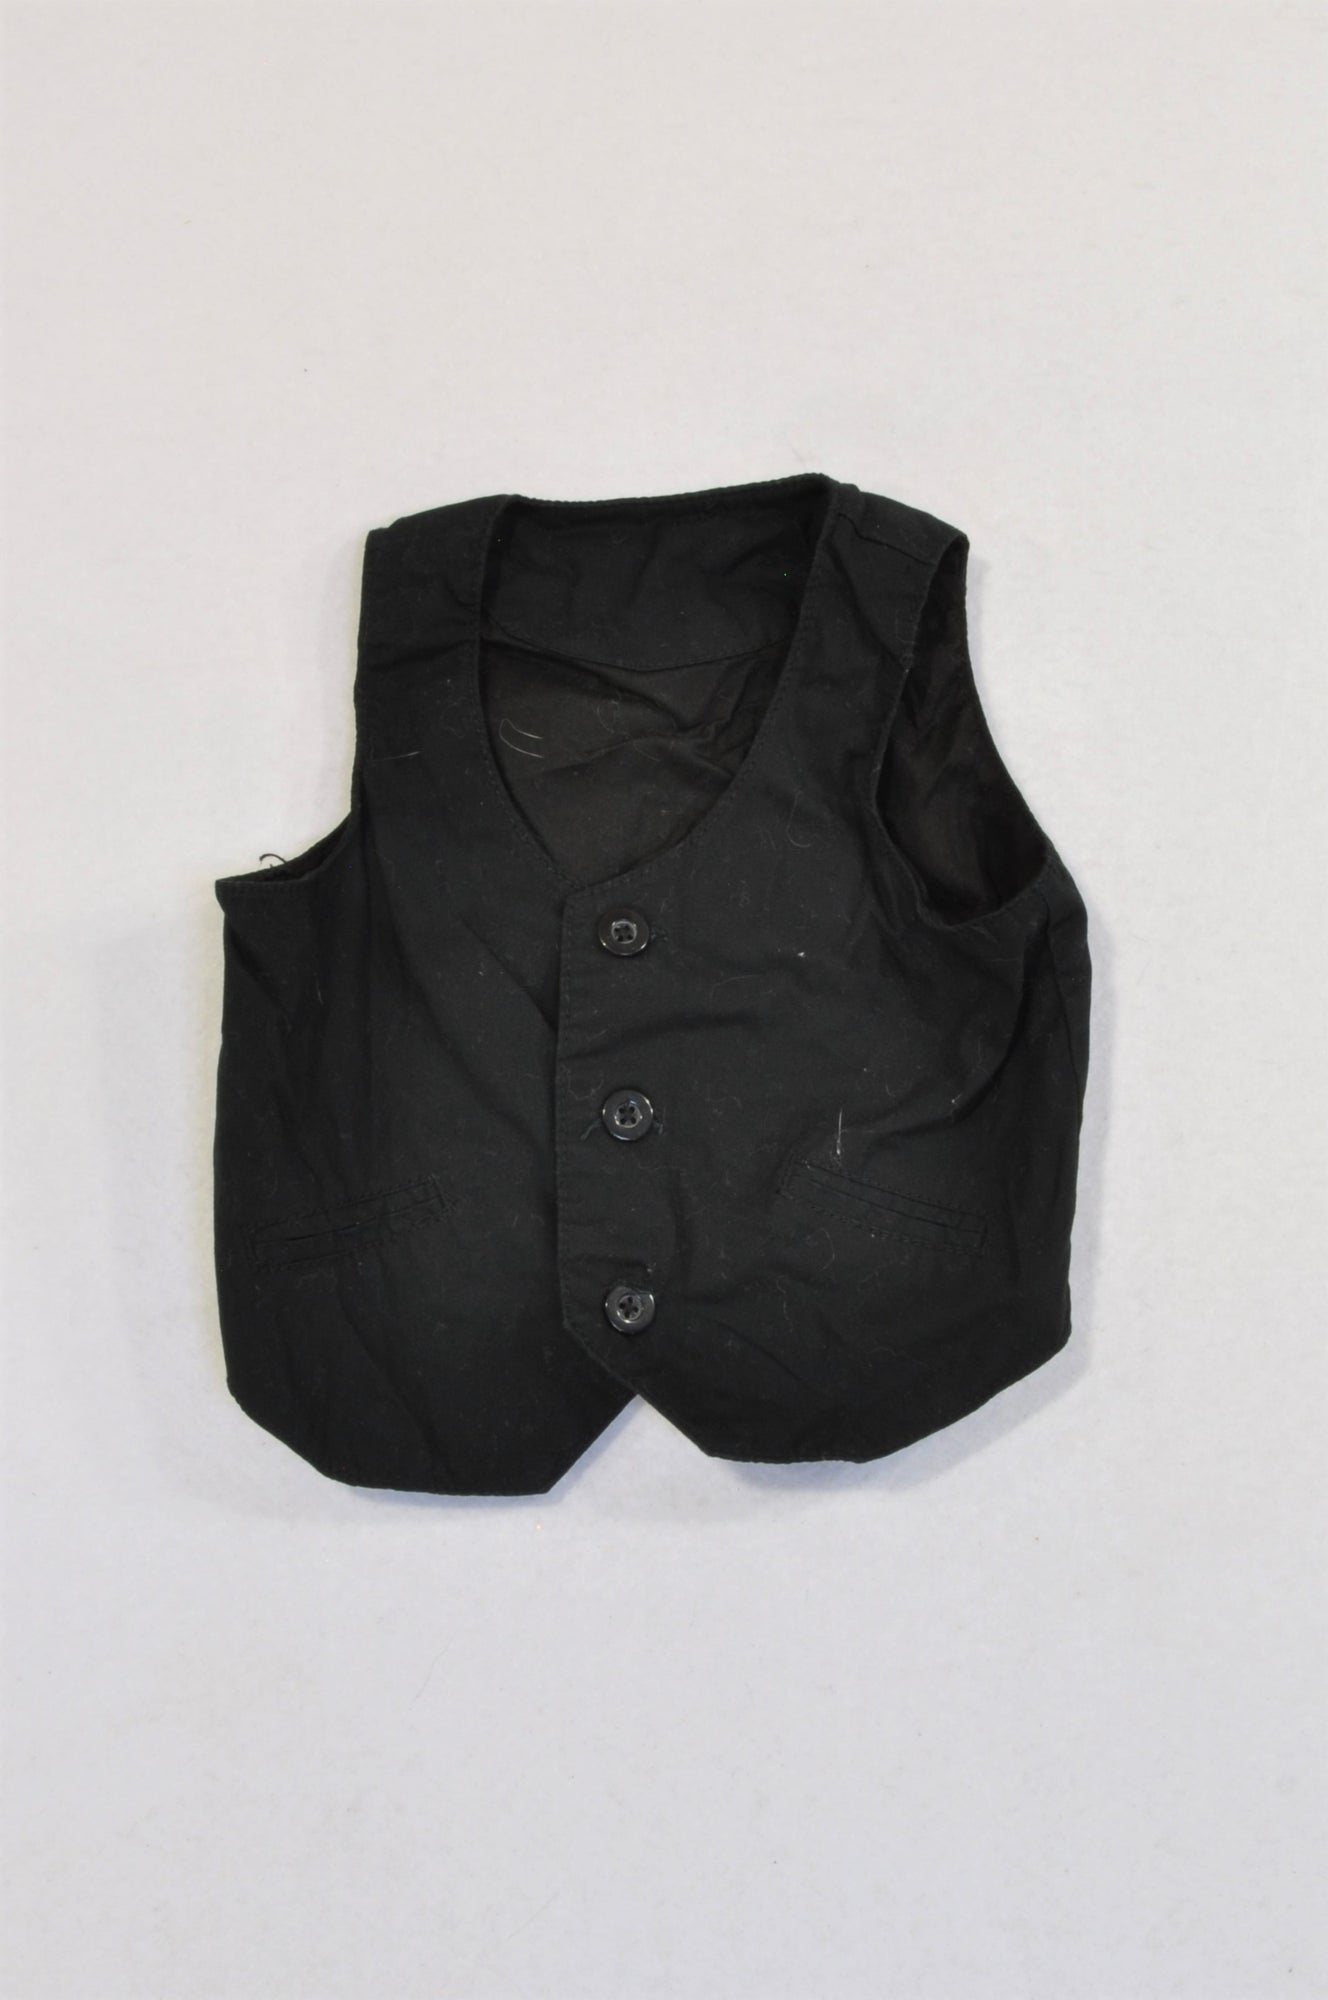 Woolworths Basic Black Button Up Waist Coat Boys 6-12 months